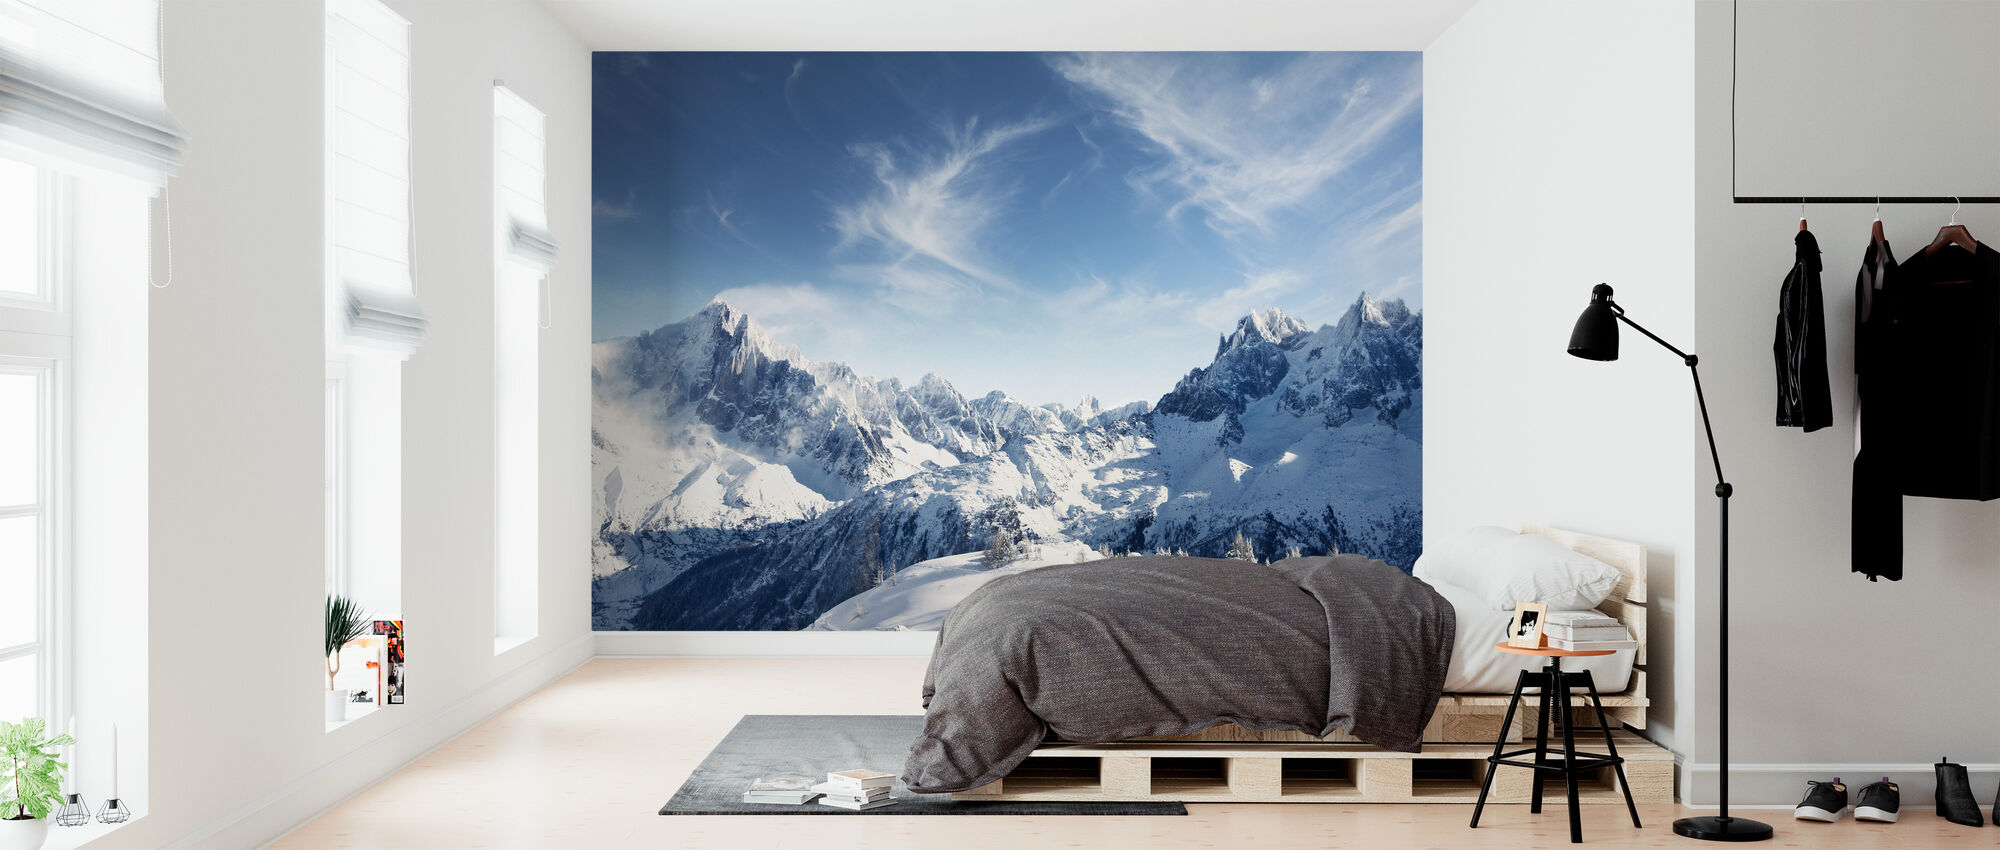 Sunny Alps in Chamonix - Wallpaper - Bedroom